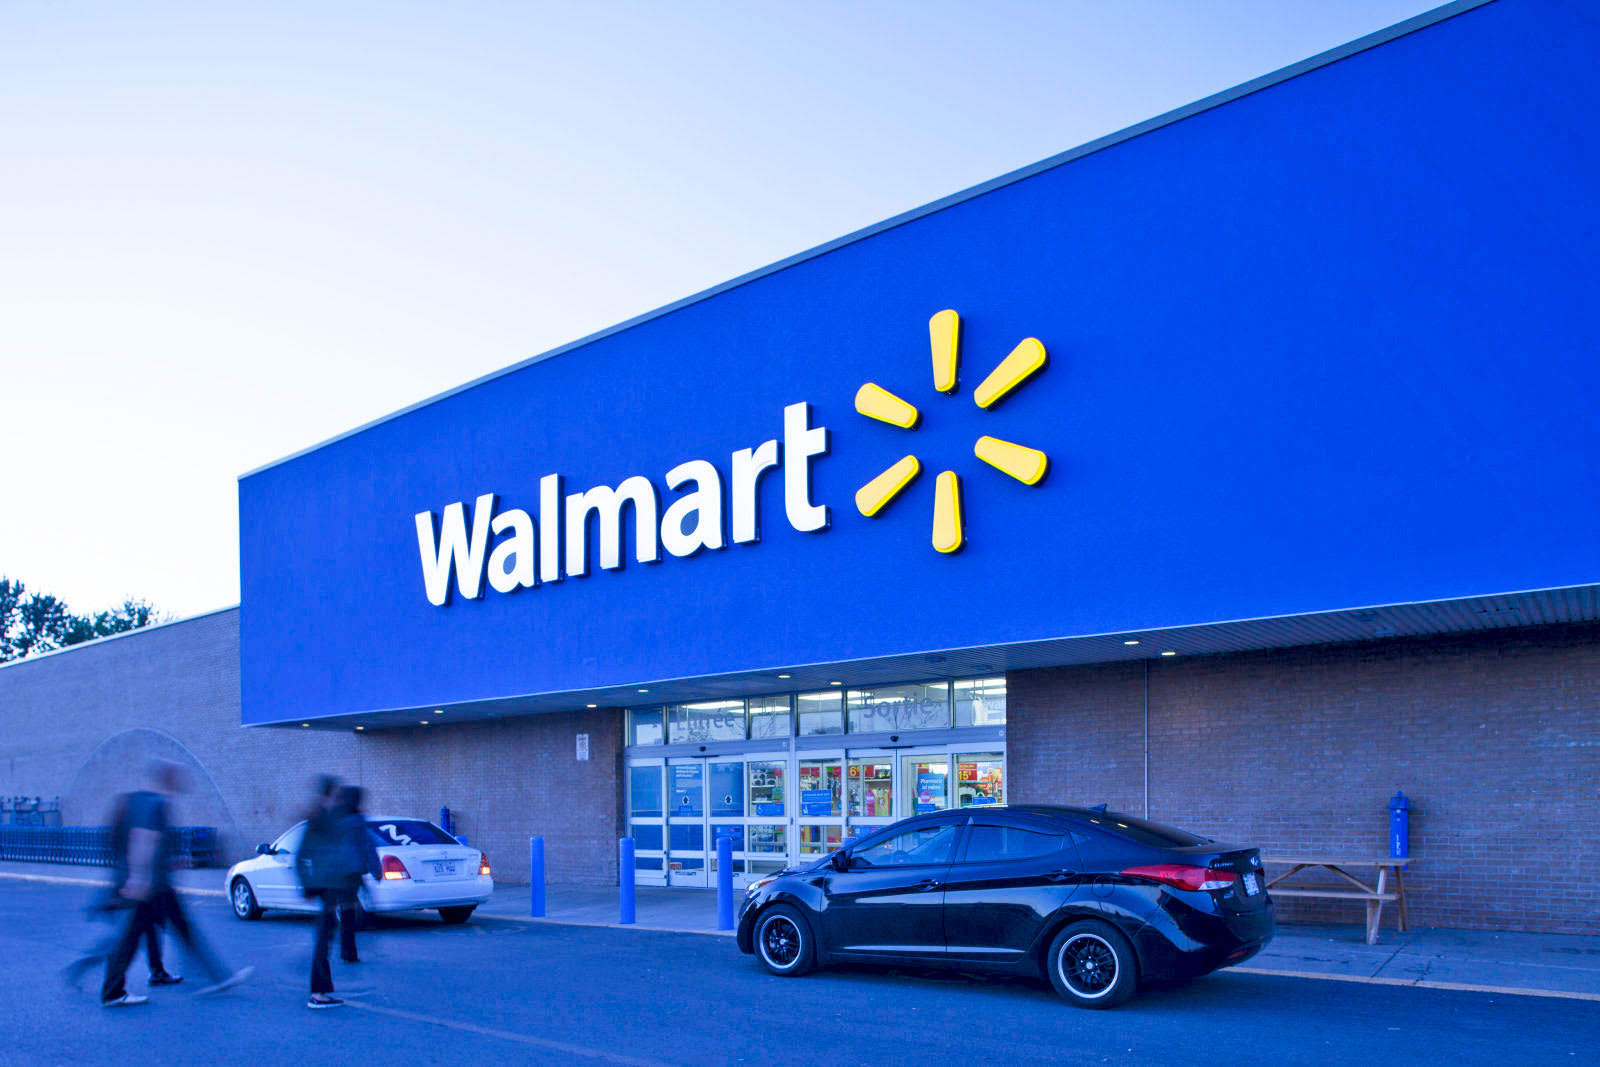 Walmart to remove violent displays in stores but will still sell guns